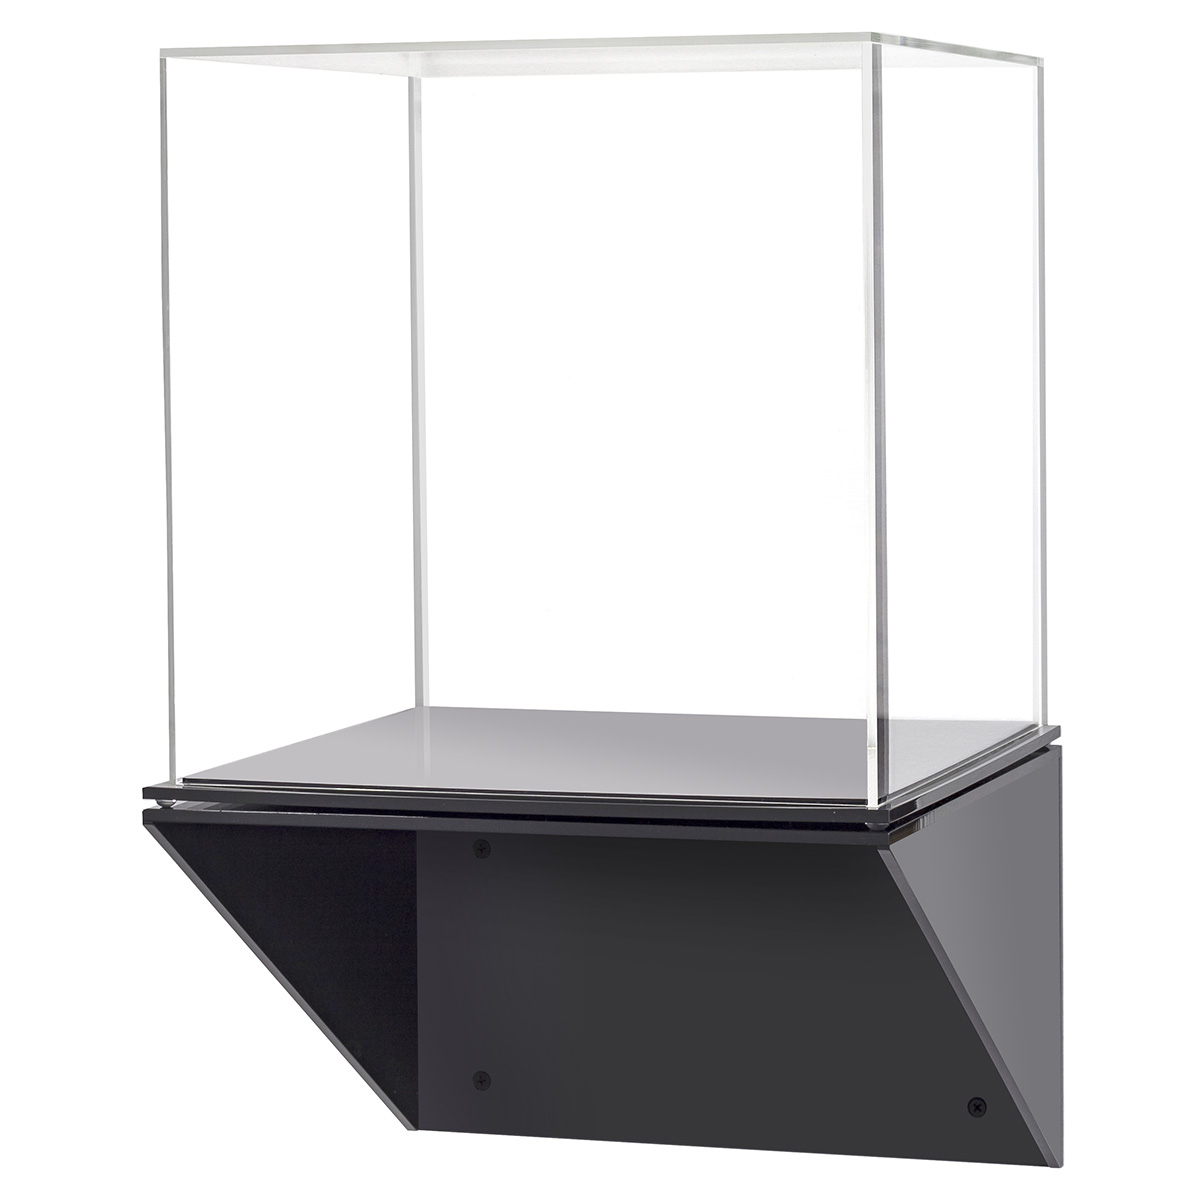 Wall Mounted Display Case Acrylic Display Case With Black Wall Mount Shelf